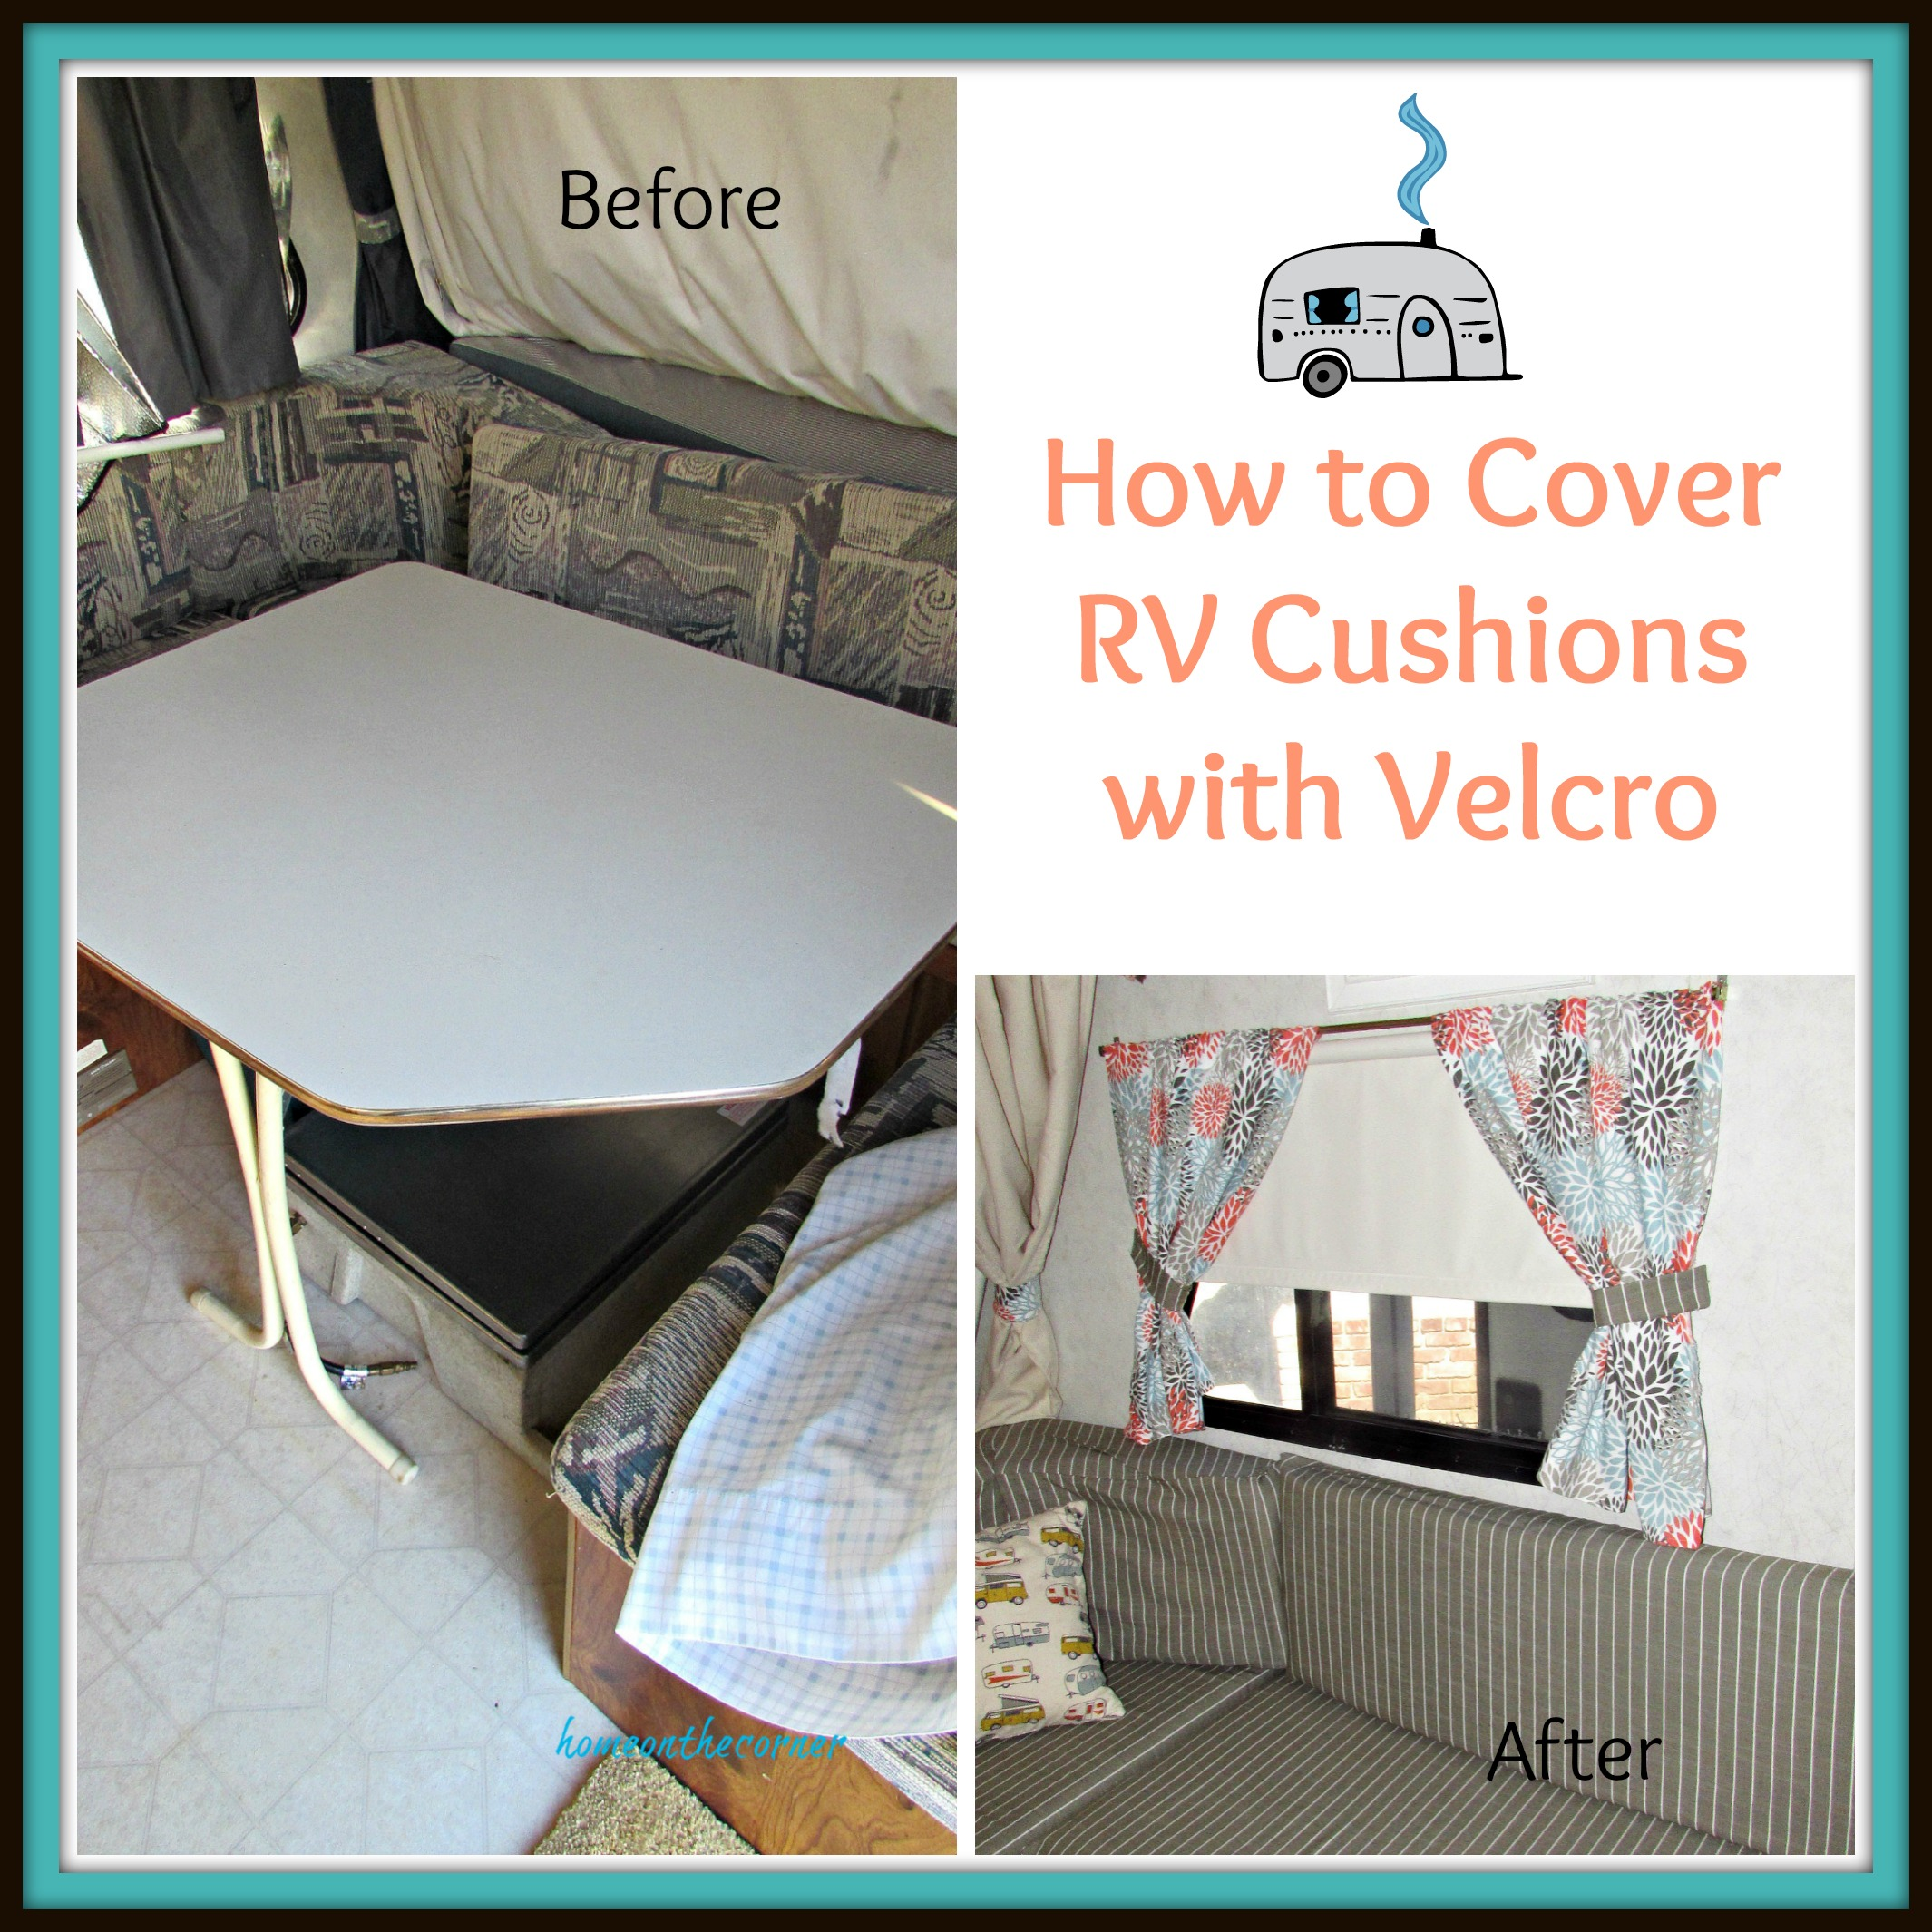 rV cushion title